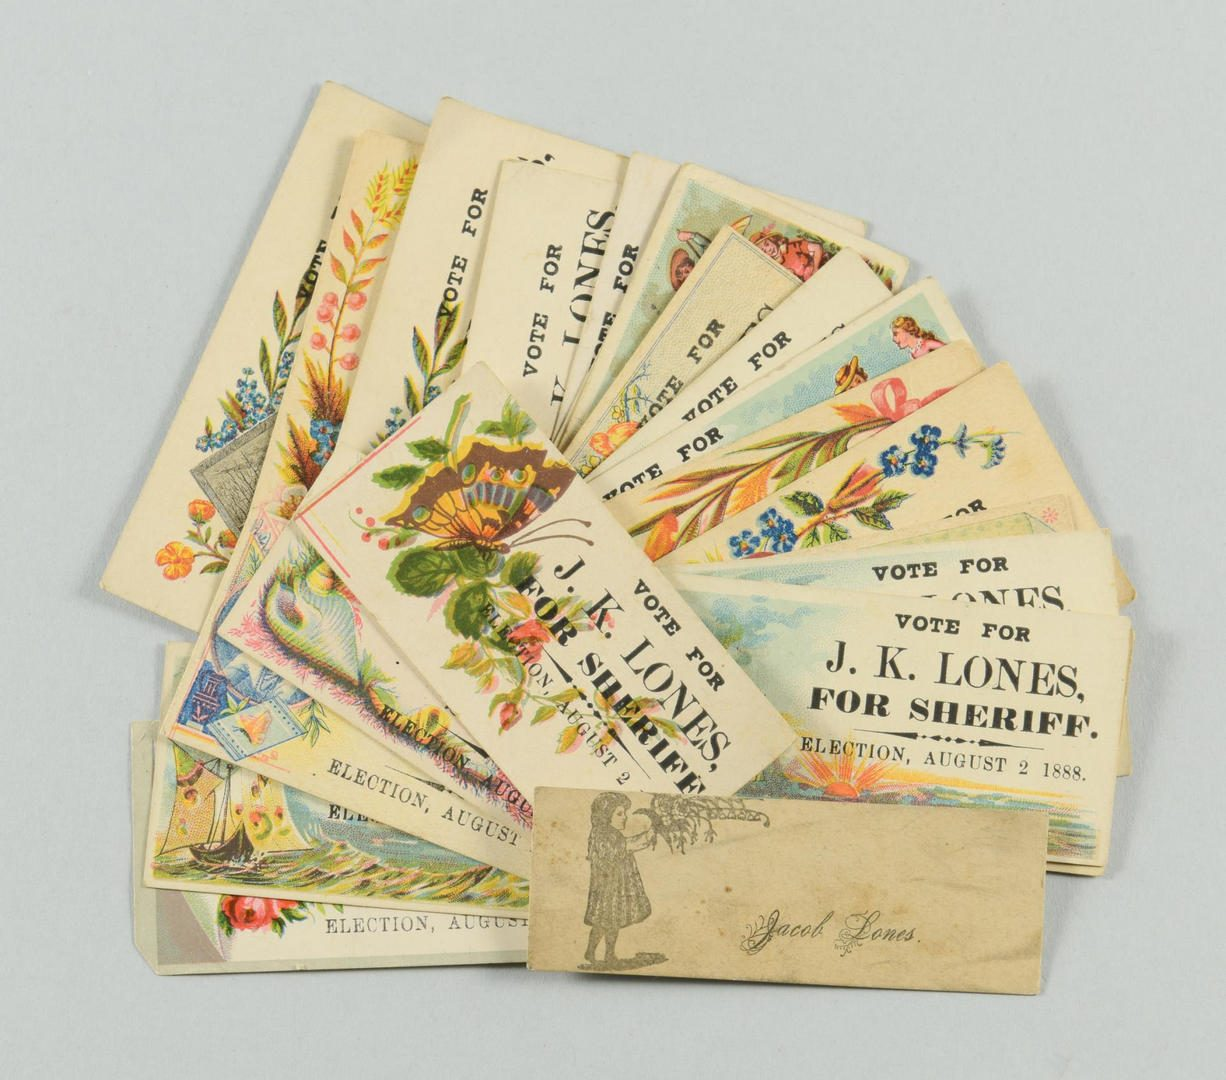 Lot 77: Lones Archive of Letters & Ephemera